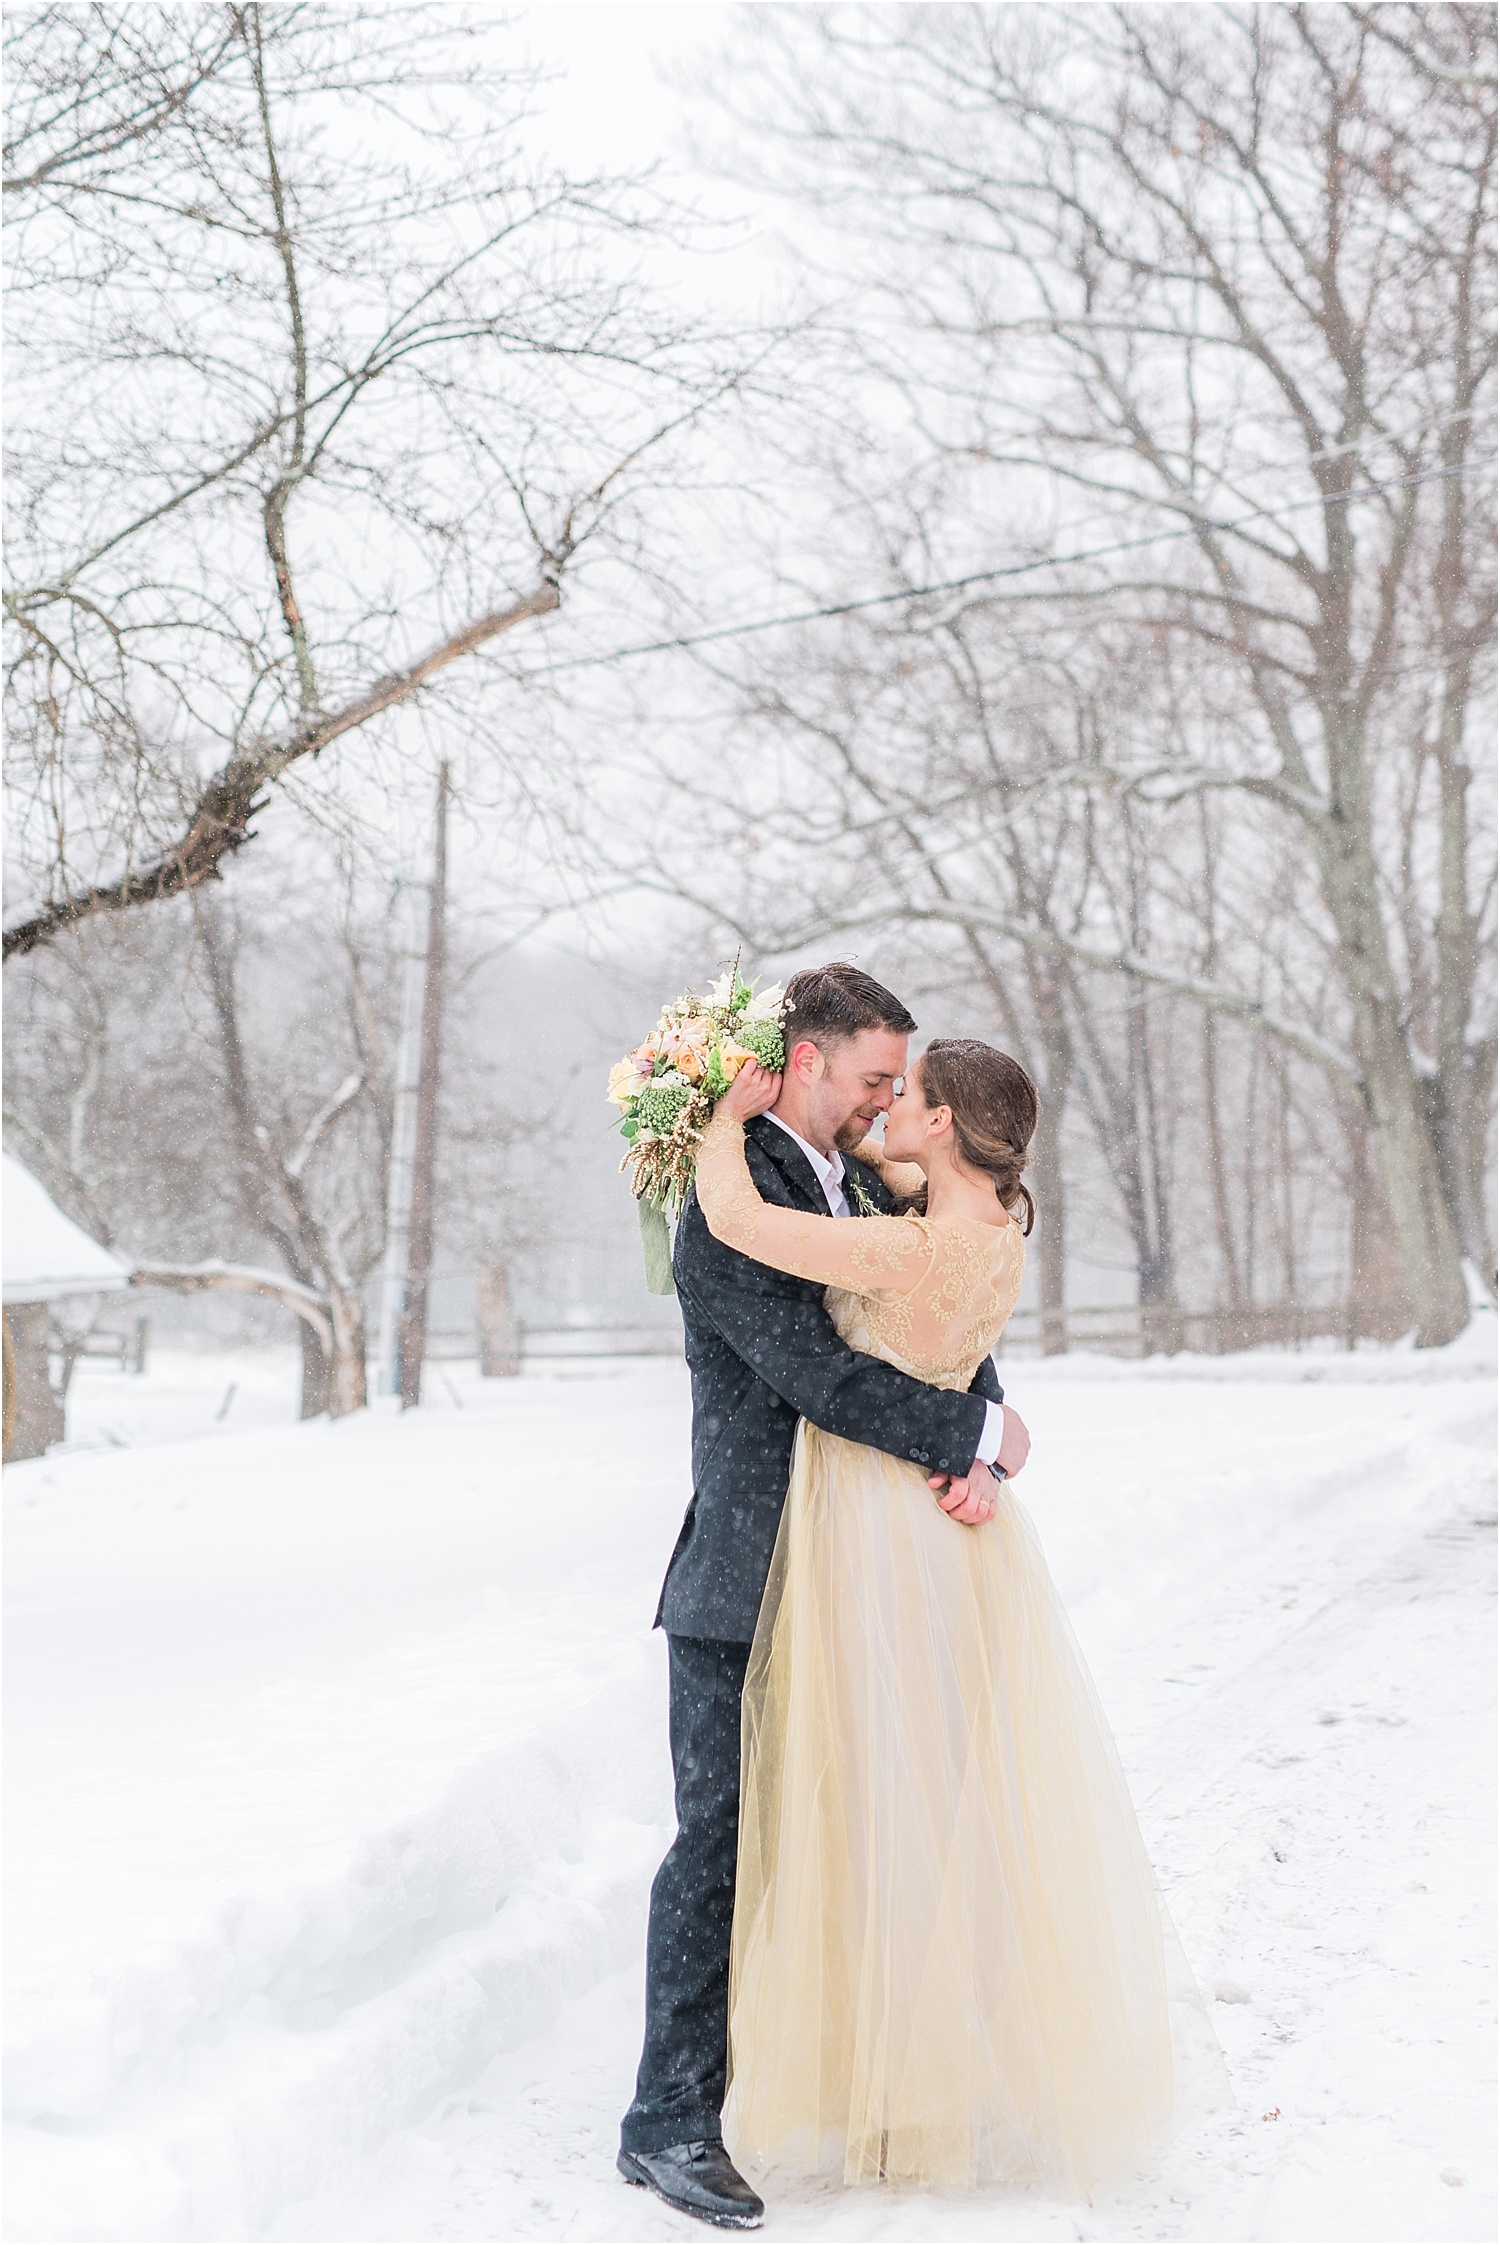 Brooklyn New York Wedding Photographer Winter Wedding-6.jpg